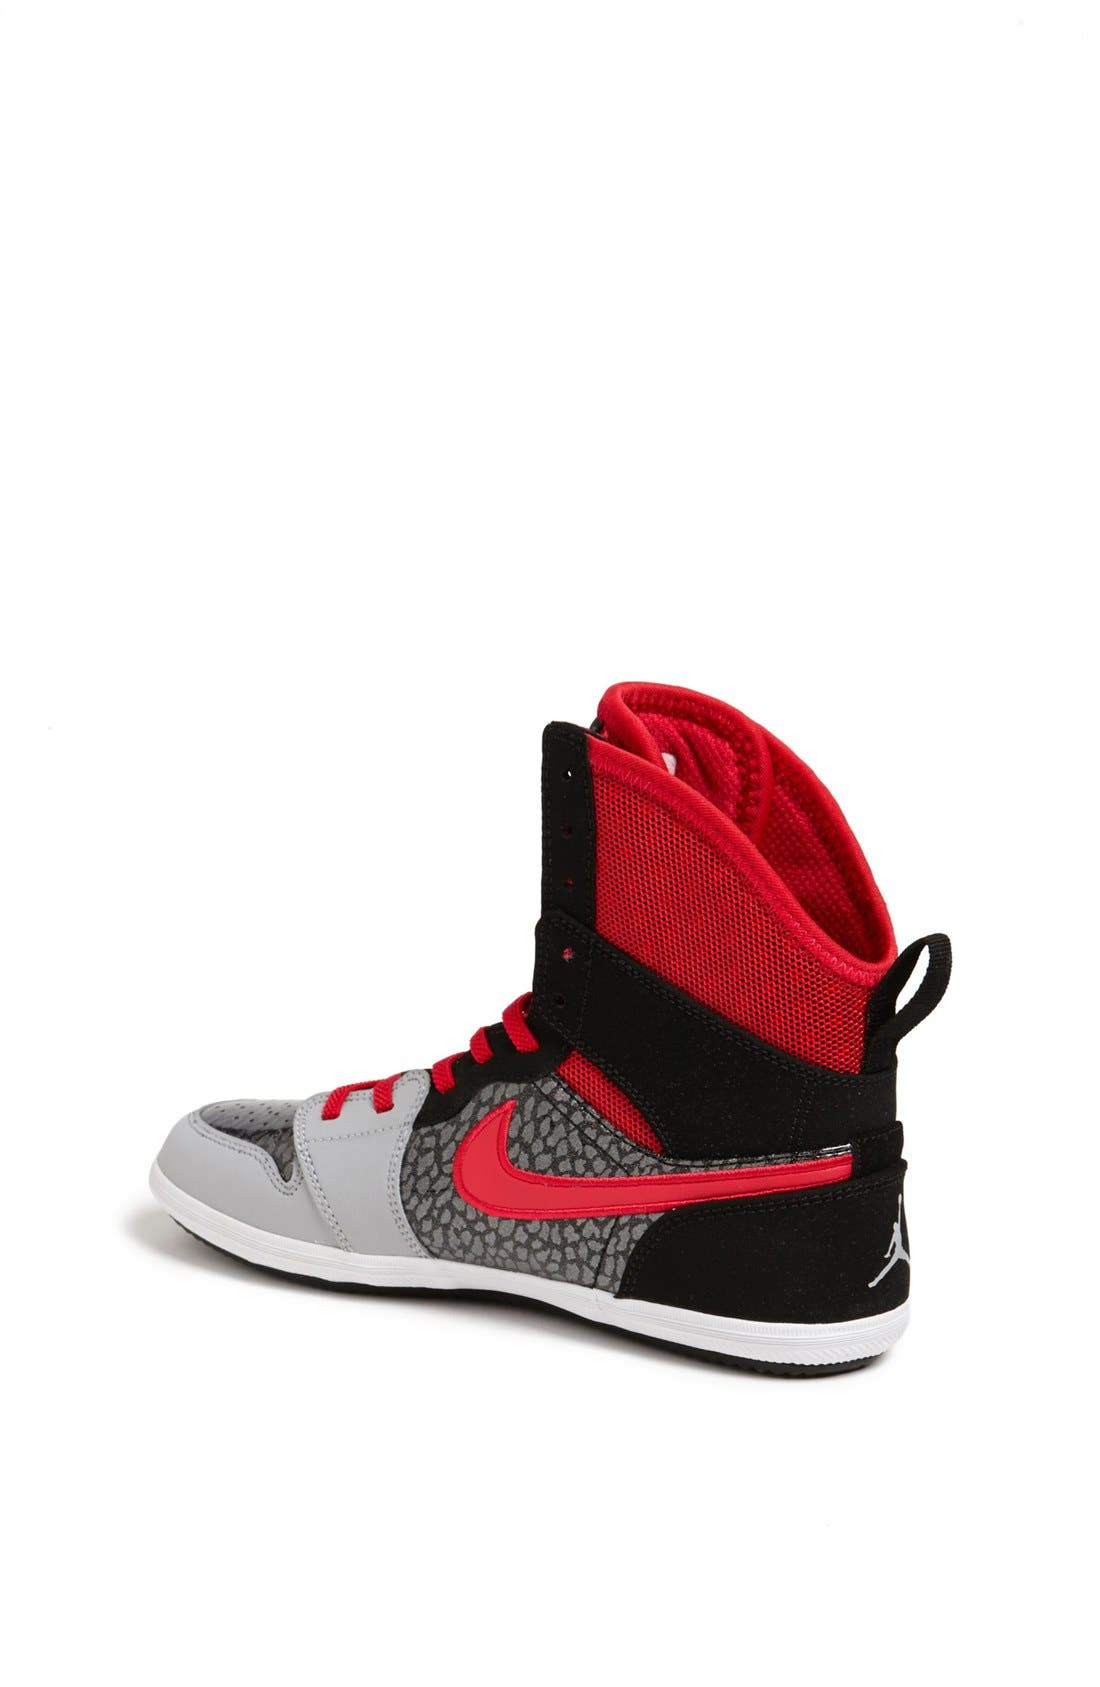 Alternate Image 2  - Nike 'Jordan 1 Skinny High' Sneaker (Big Kid)